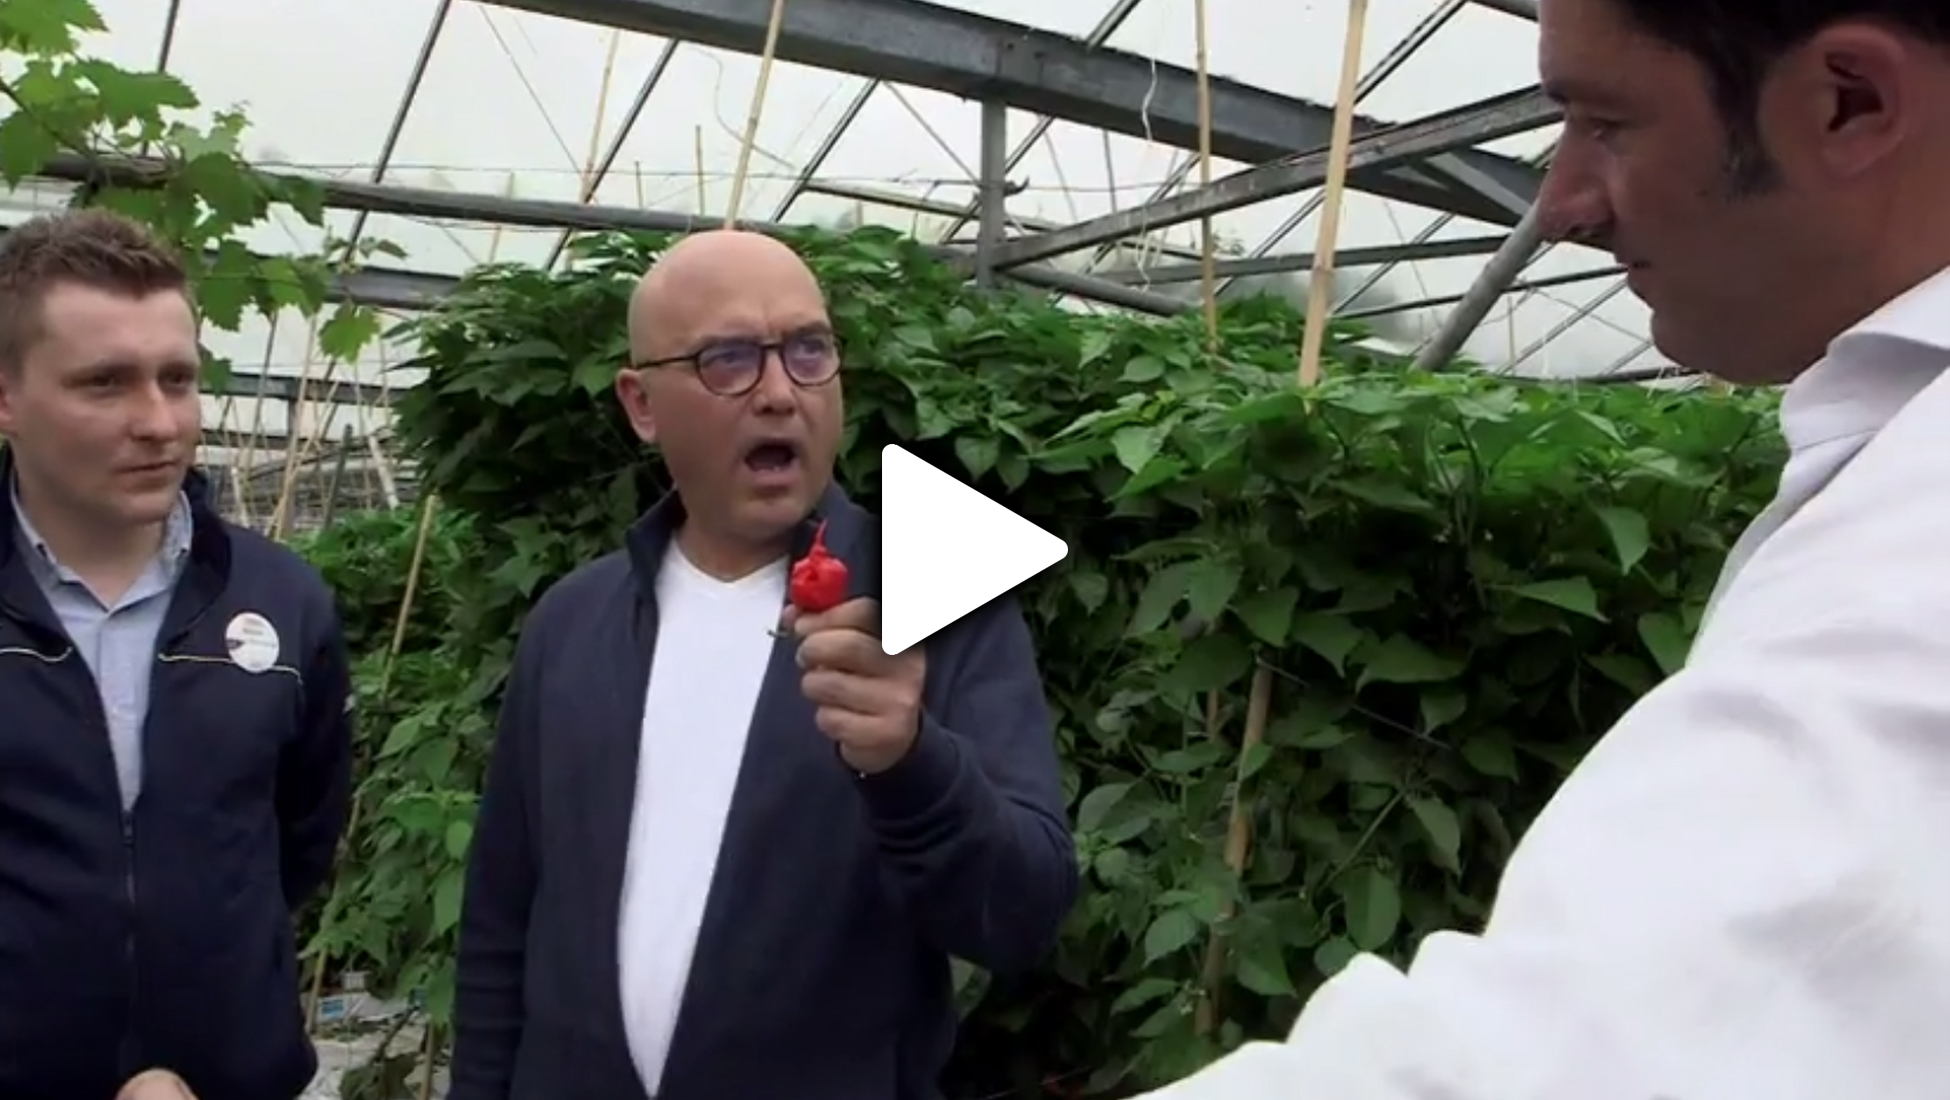 greg-wallace-lovemychillies